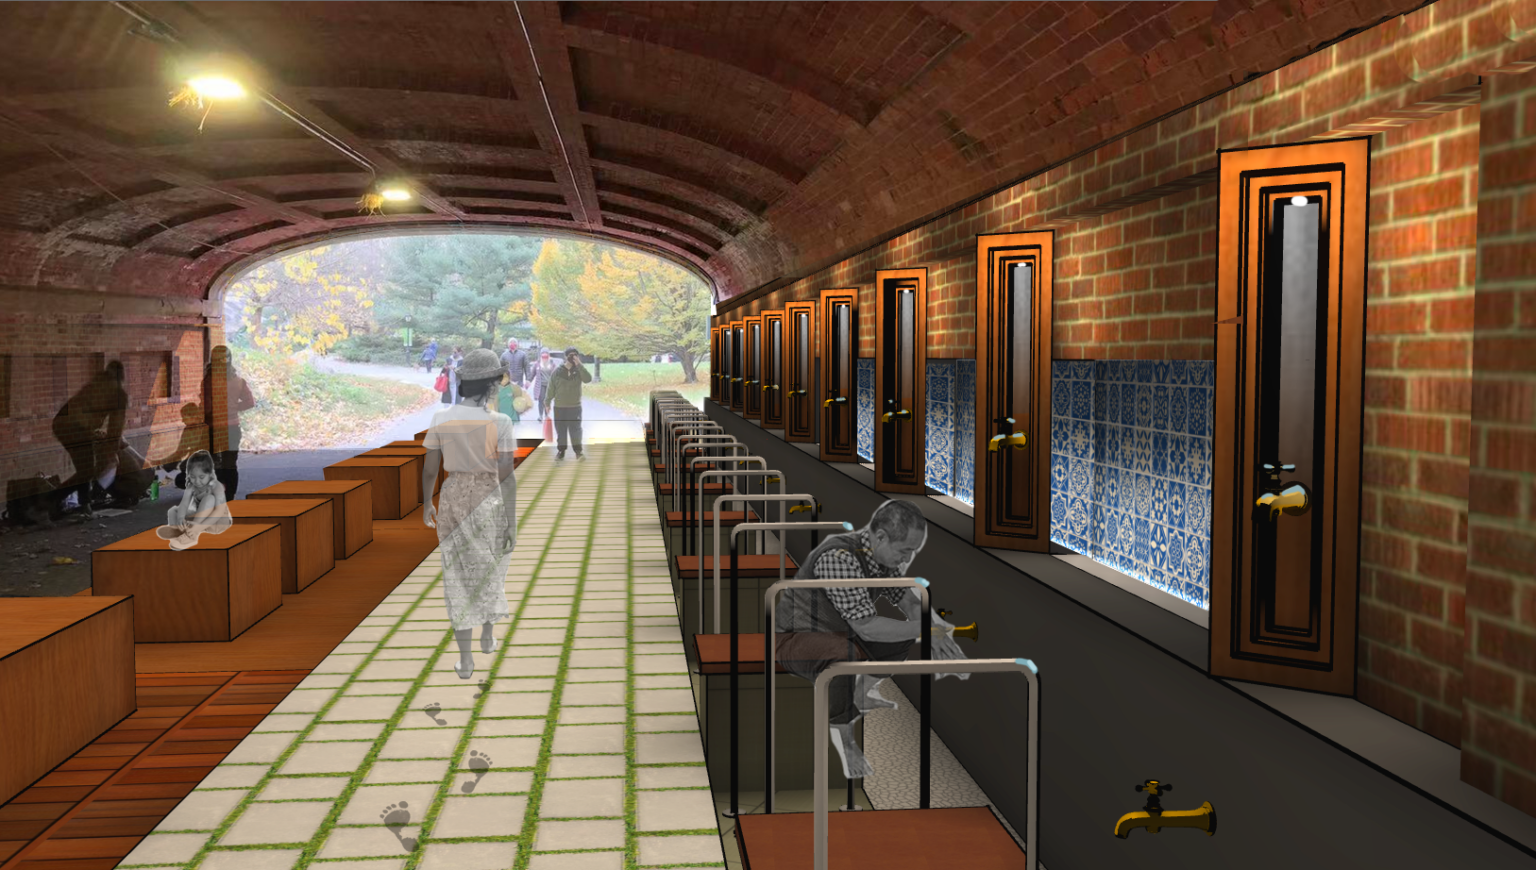 A person washes their hands at a washing station within one of Central Park's tunnels as a barefoot person passes by on a white stone walkway between a row of washing stations and a row of wooden blocks for sitting